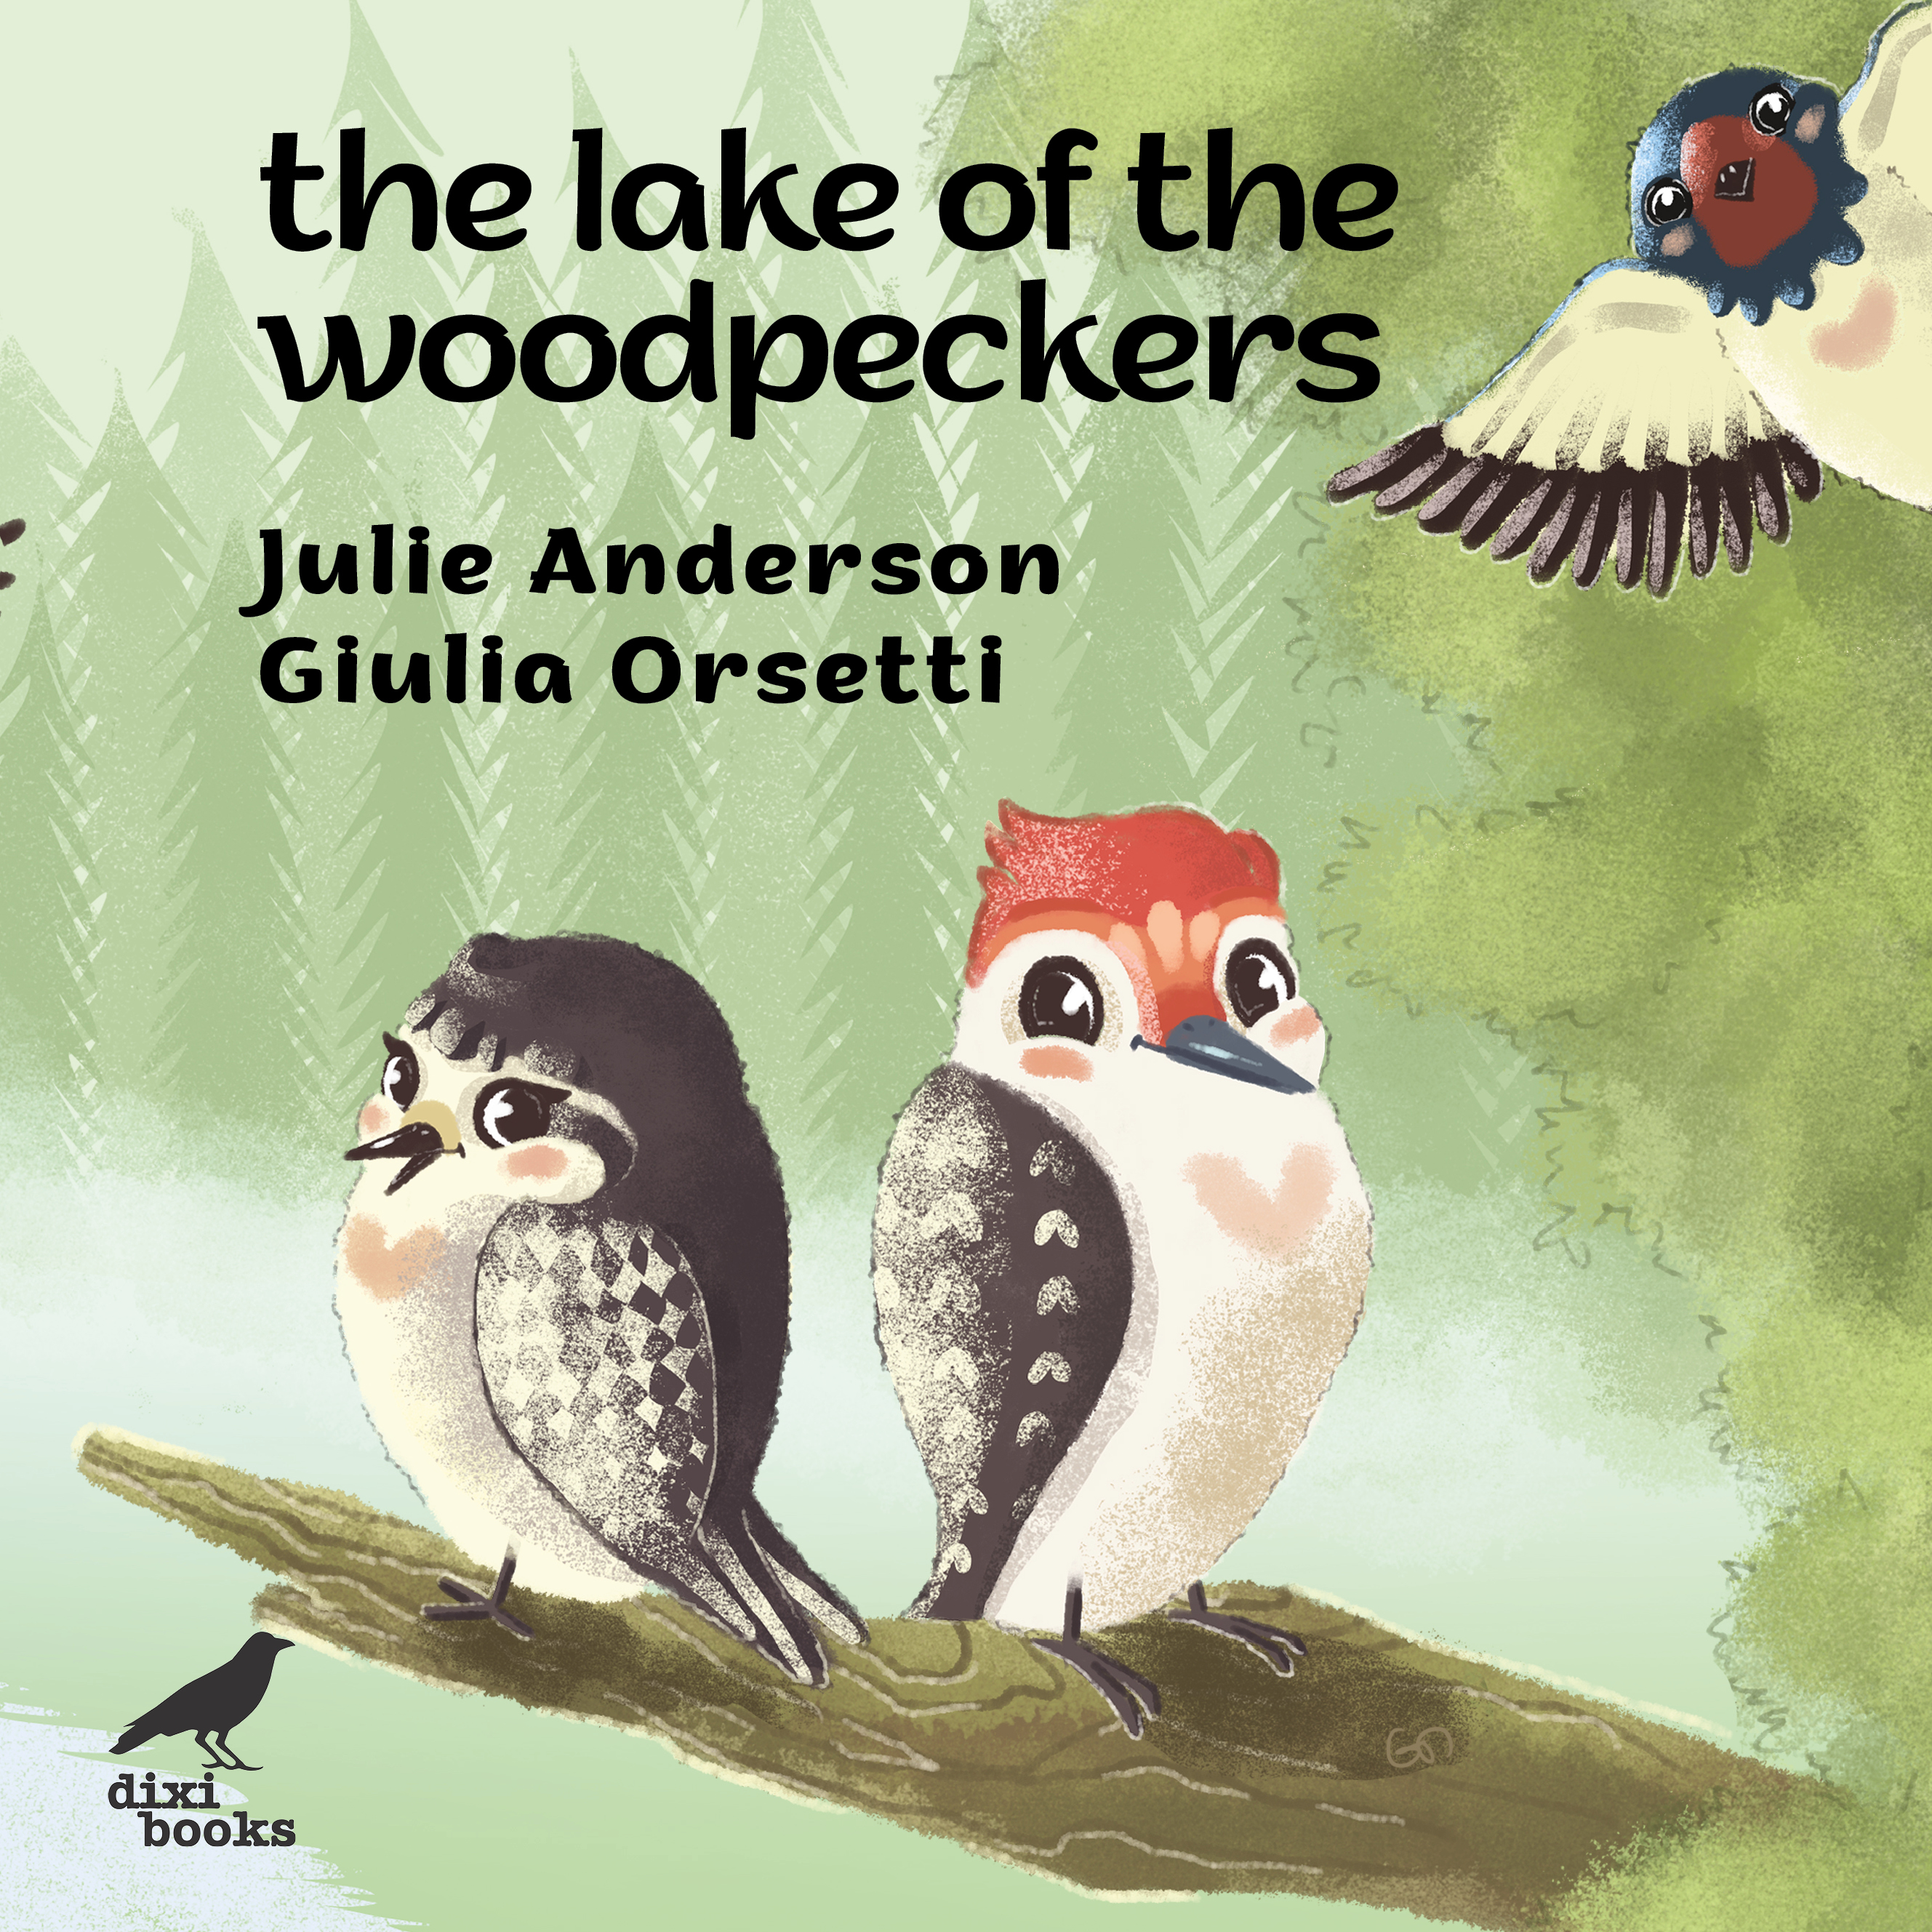 The Lake of the Woodpeckers